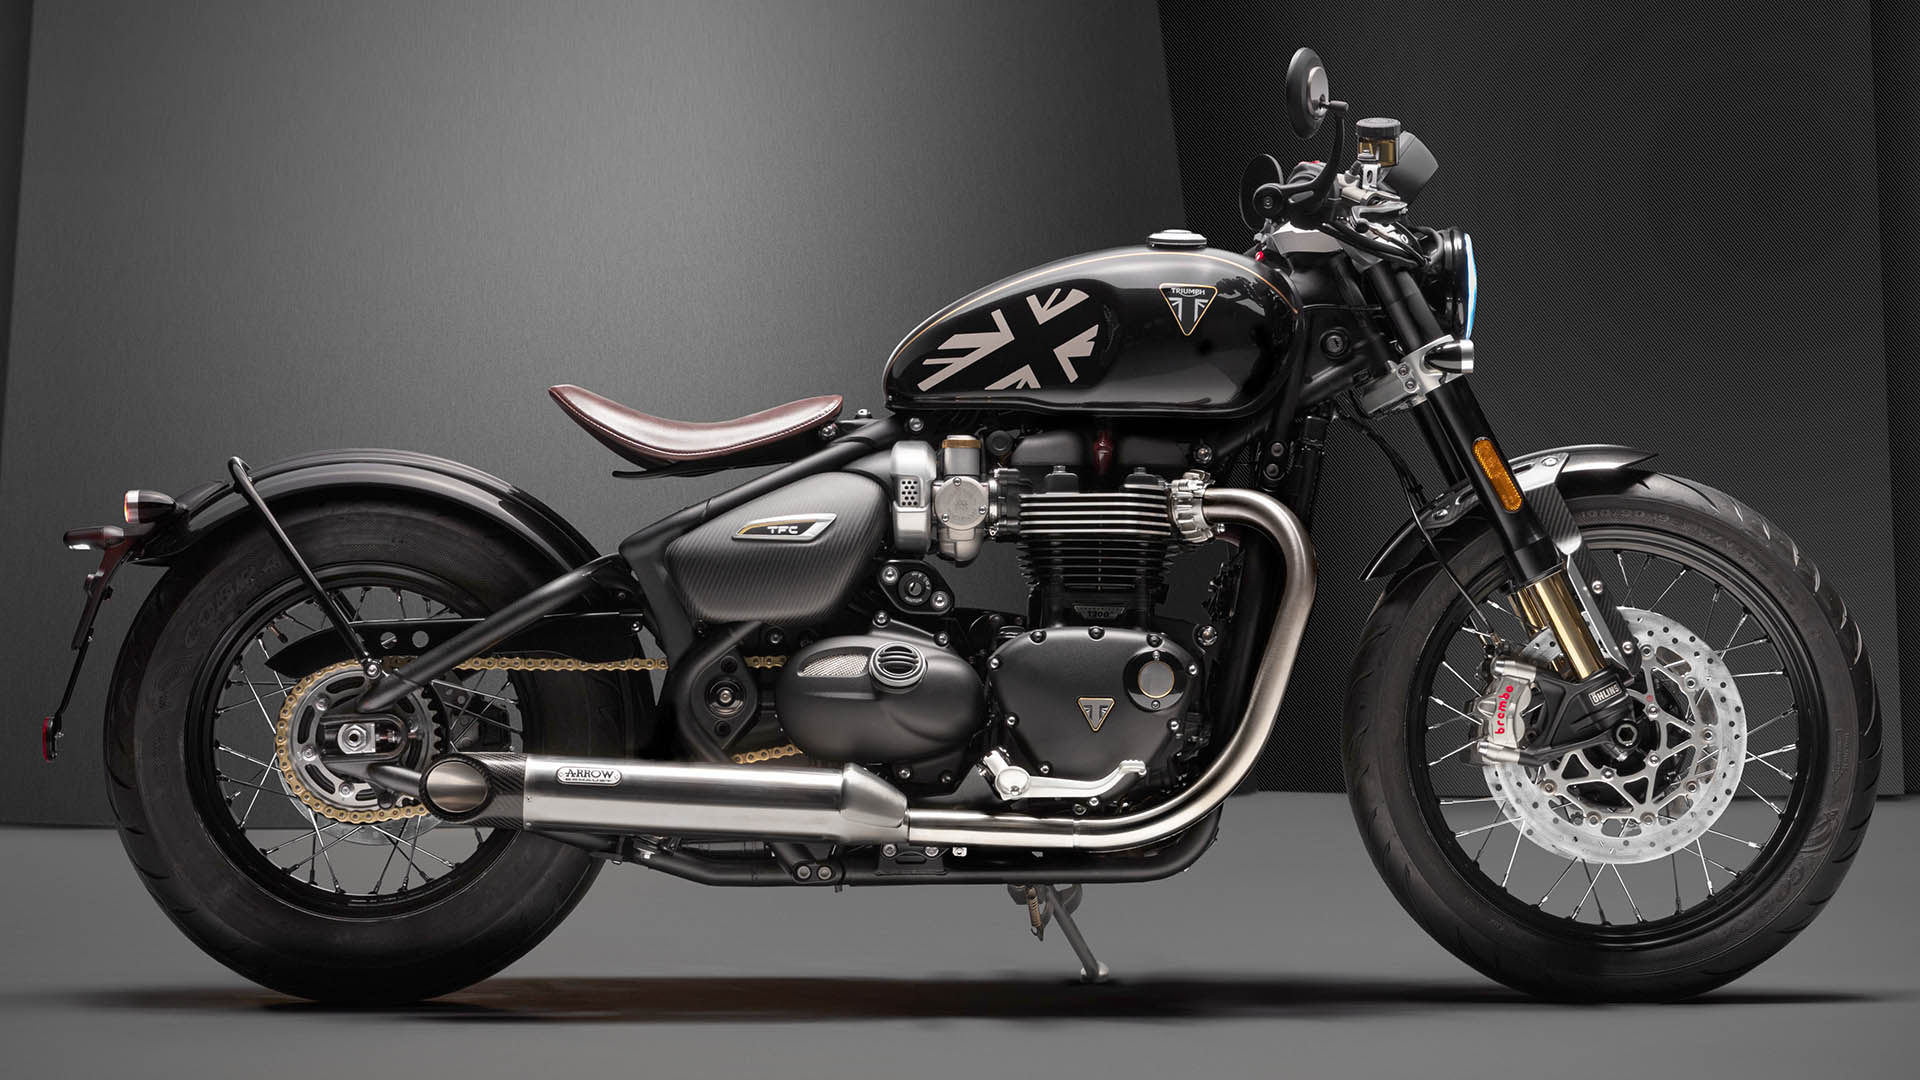 2020 Triumph Bobber TFC - right side